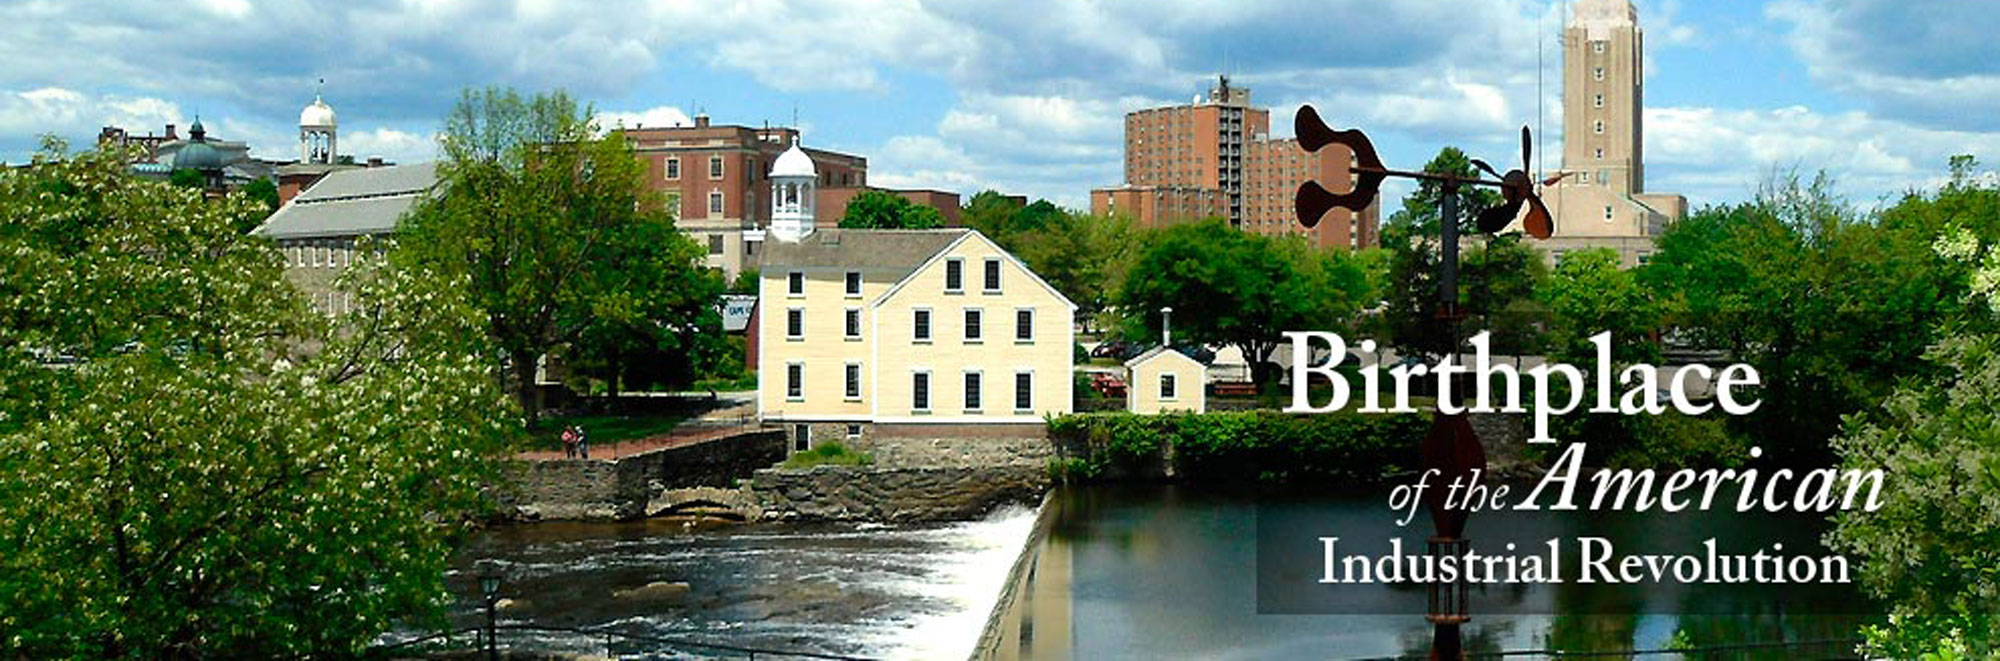 Slater Mill the Birthplace of the American Industrial Revolution